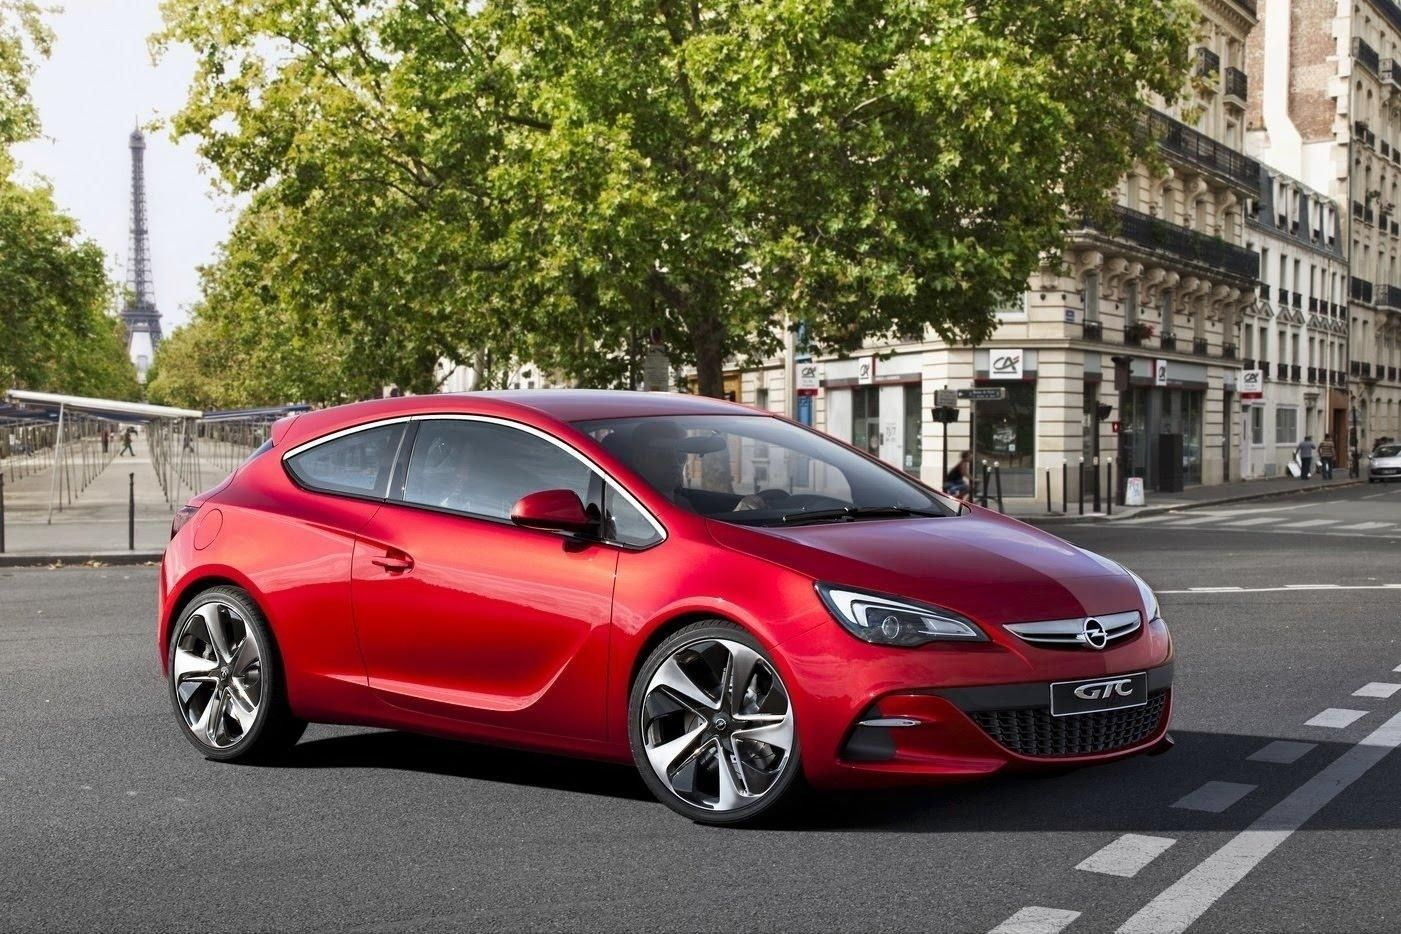 2019 Opel Astra Opc New Review Car Vauxhall Car Review